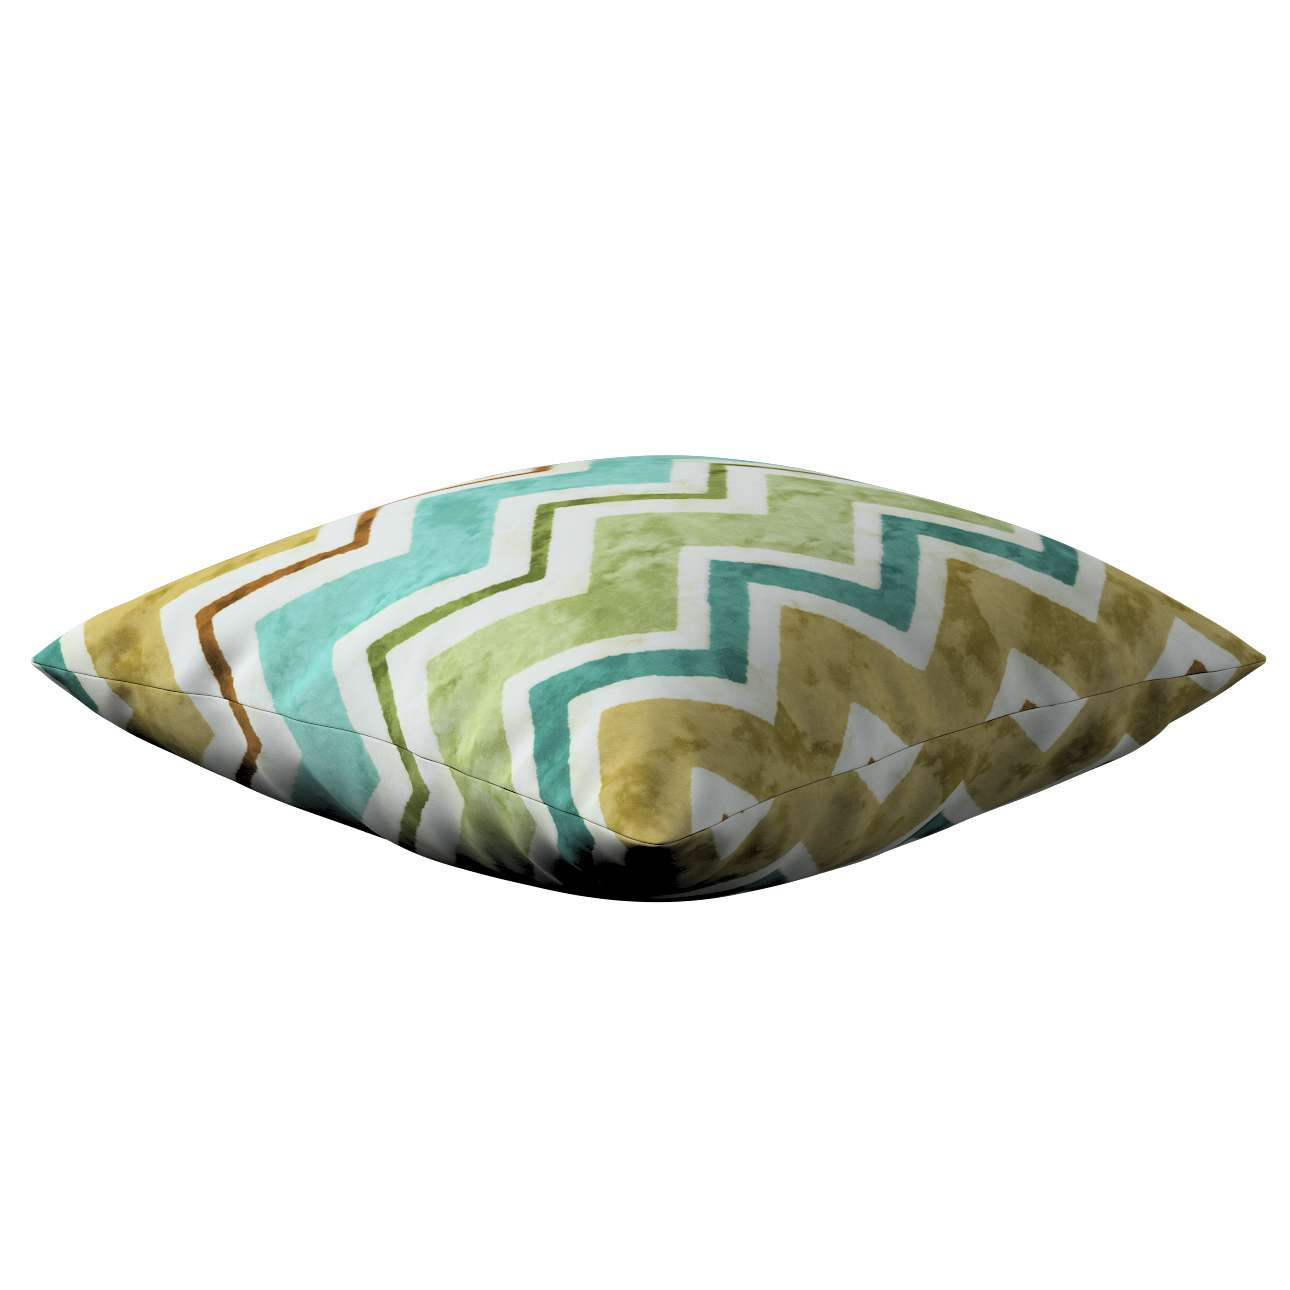 Kinga cushion cover 43 x 43 cm (17 x 17 inch) in collection Acapulco, fabric: 141-41